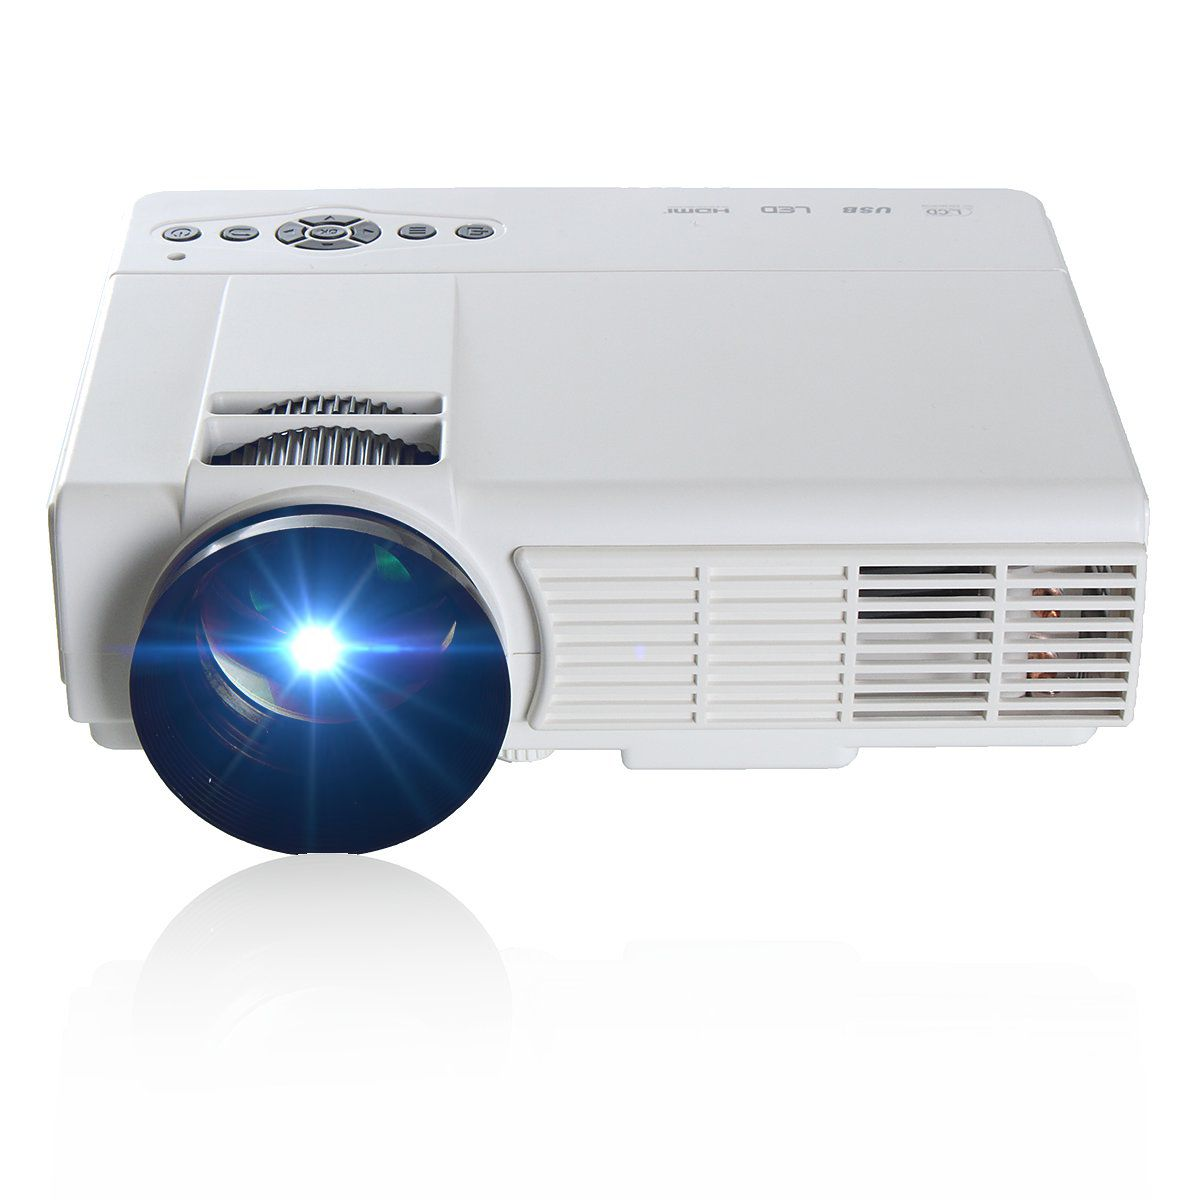 LEORY Q5 3D HD 1080P 3000 Lumens 800 x 480 Resolution Home Theater Multimedia LED Projector